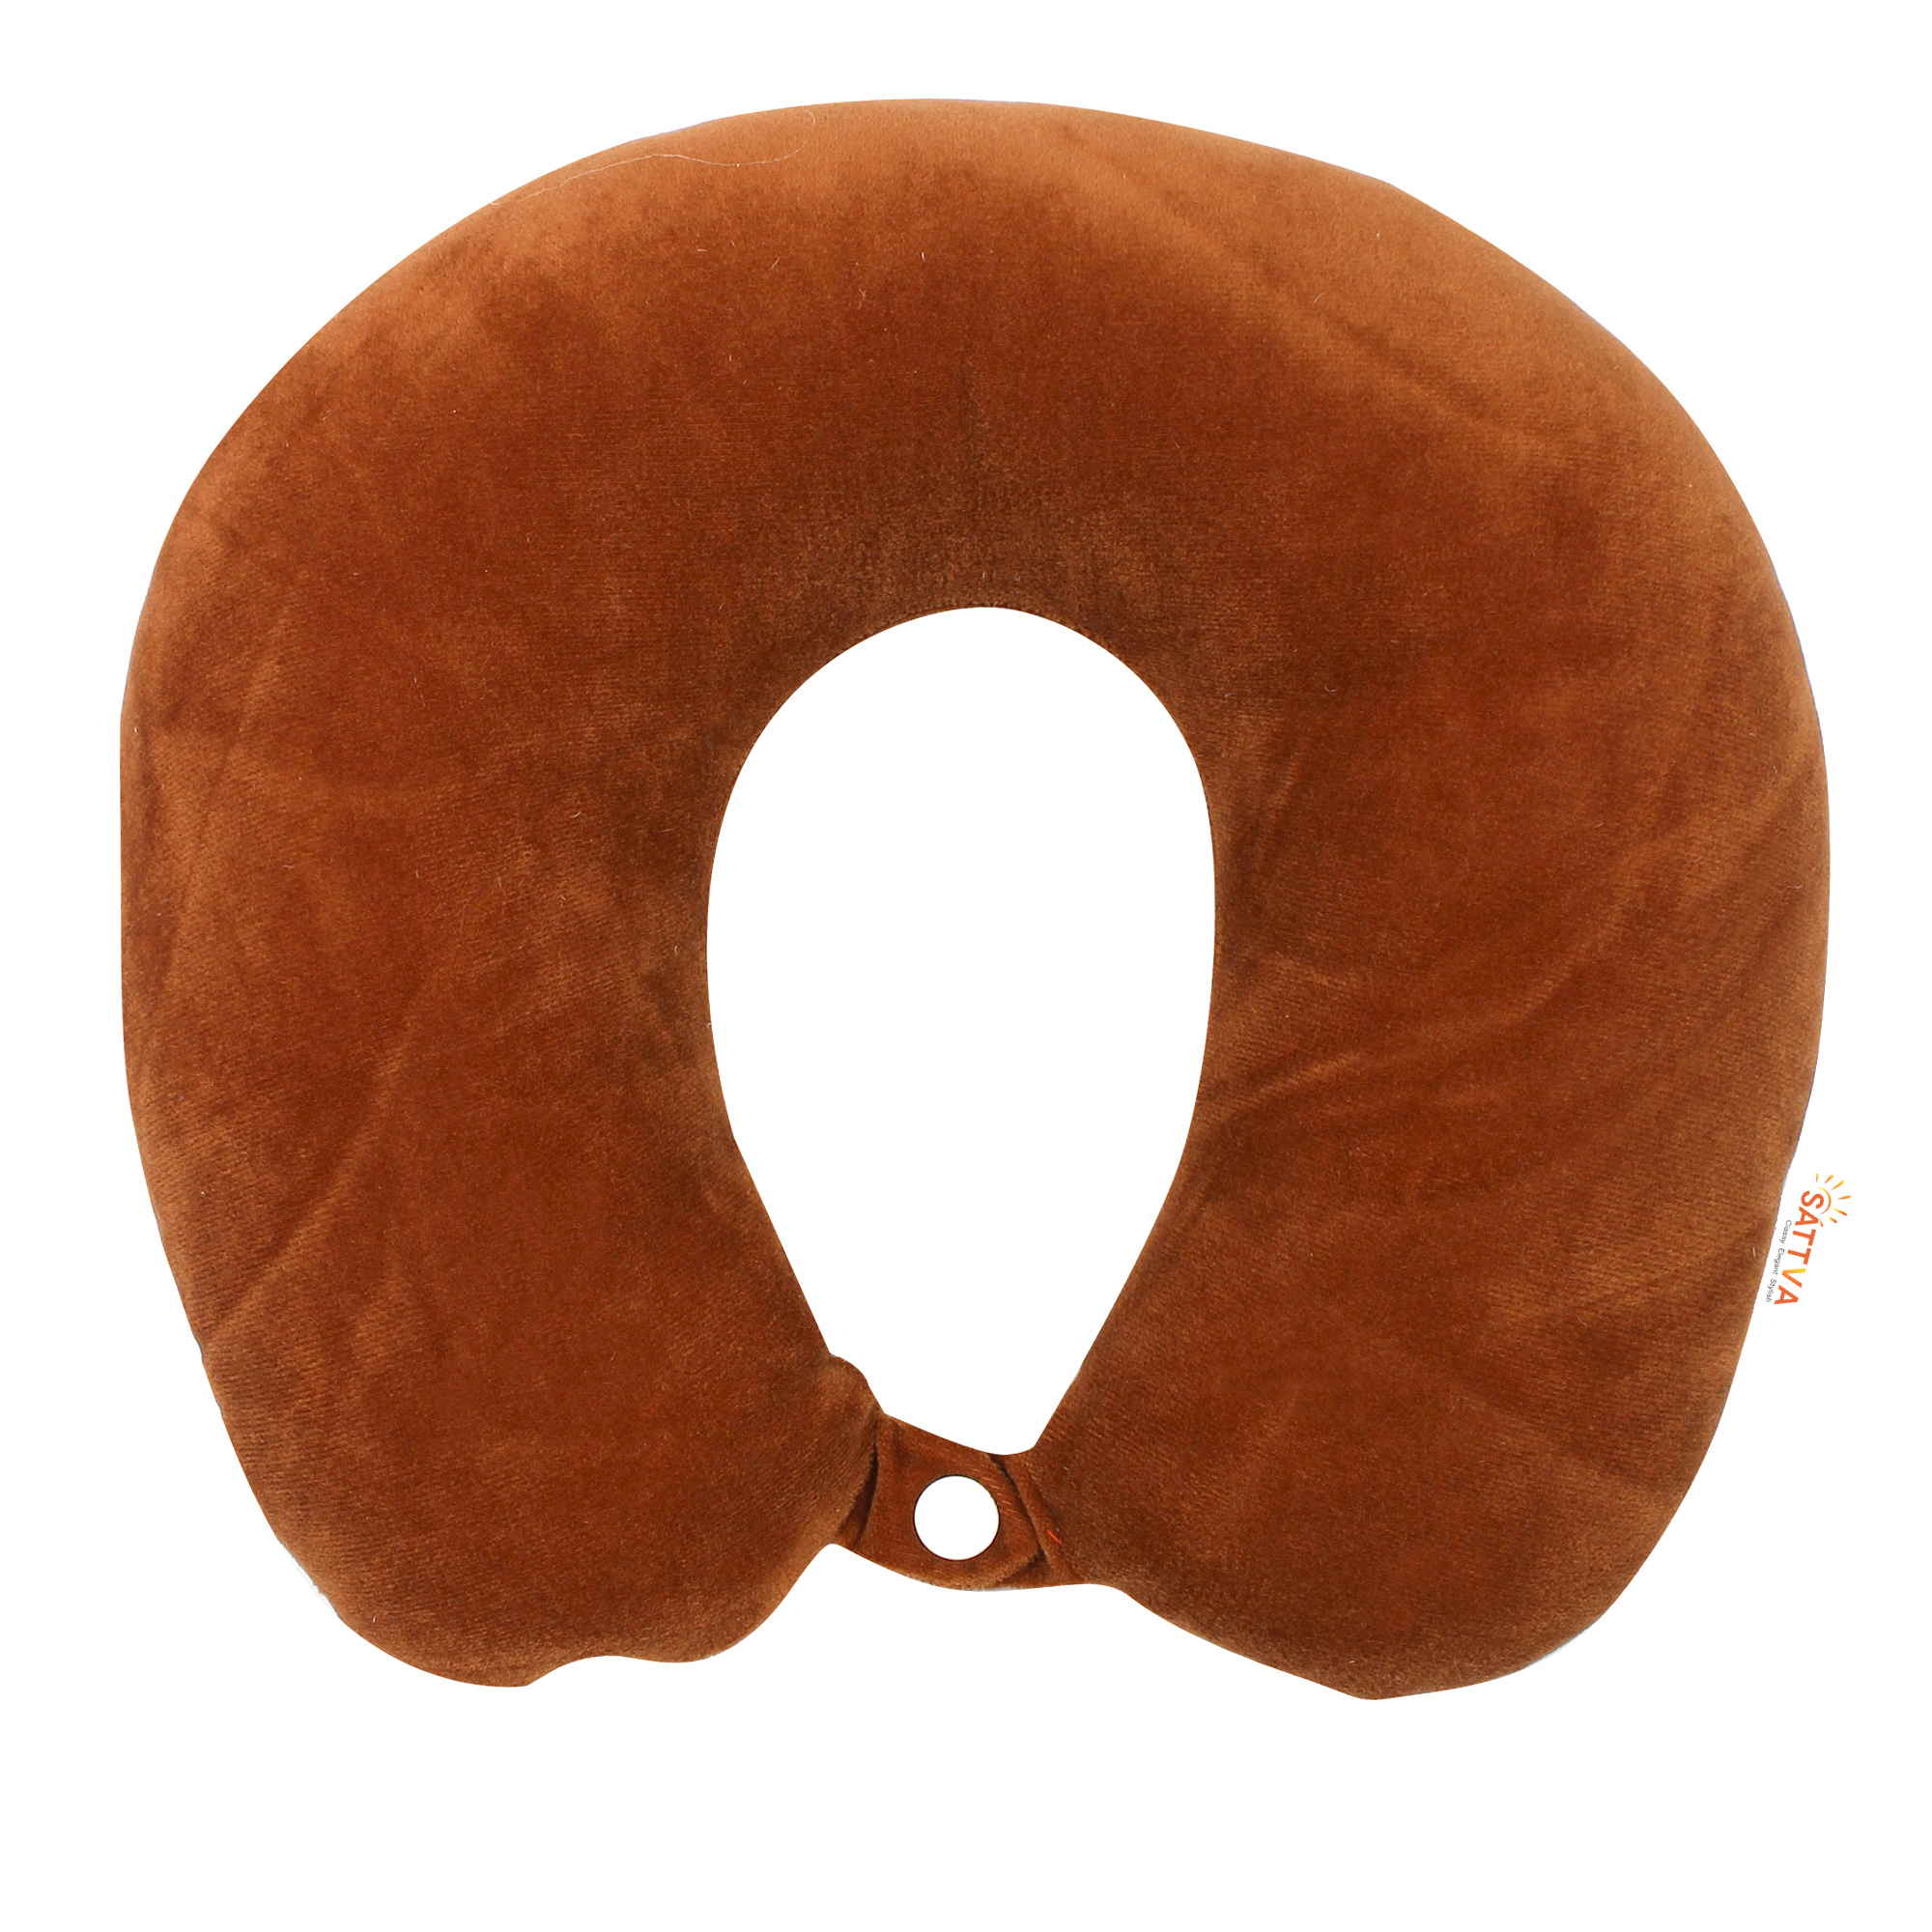 Sattva Travel Neck Pillow U Shaped Memory Foam Fabric Soft Pillow For Travel In Car,Bus,Train & Flight - Brown